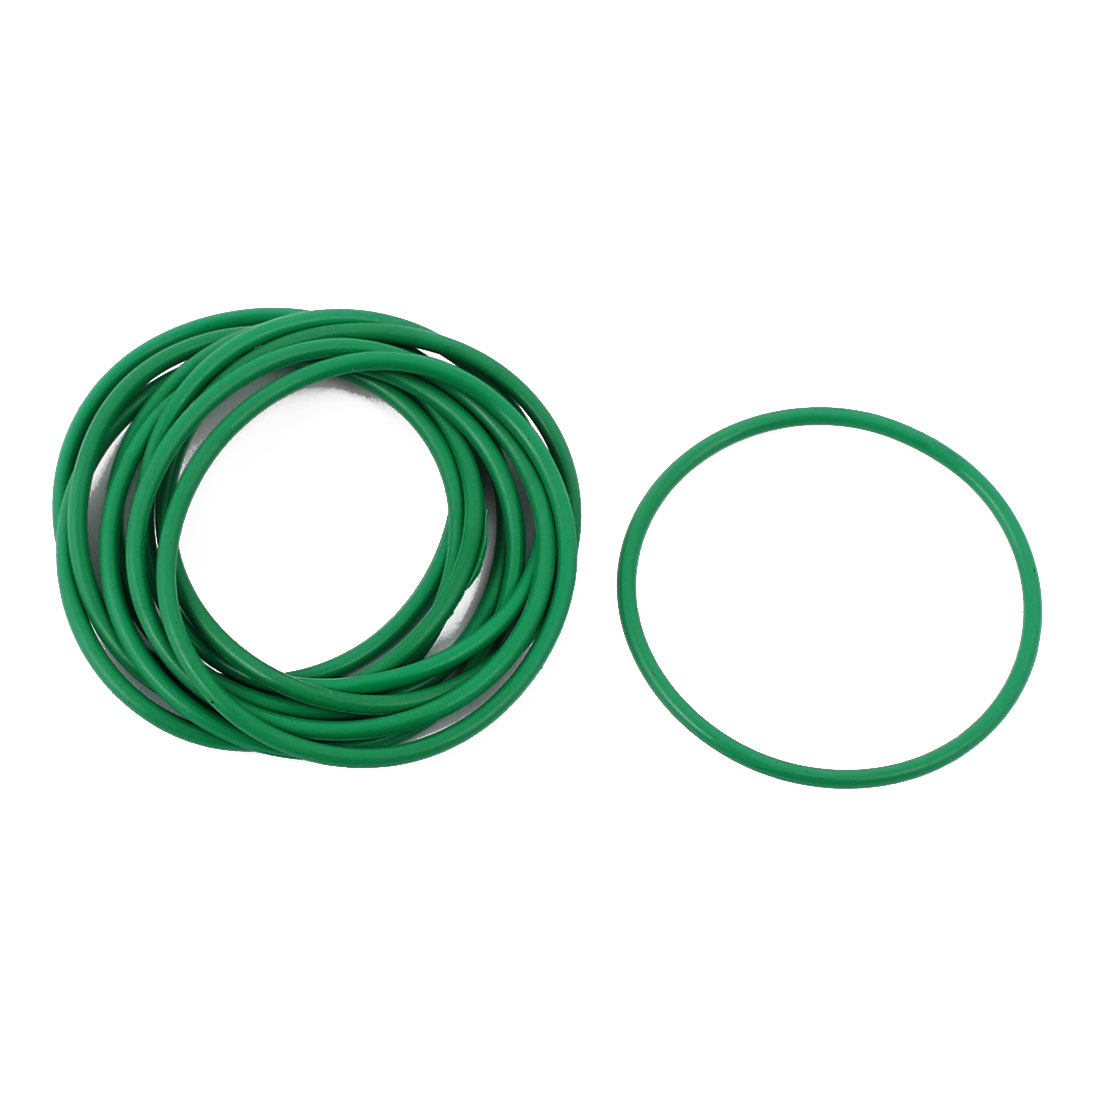 10 Pcs 32 x 1.5mm Oil Resistant Nitrile Rubber O Sealing Ring Nonpoisonus Green